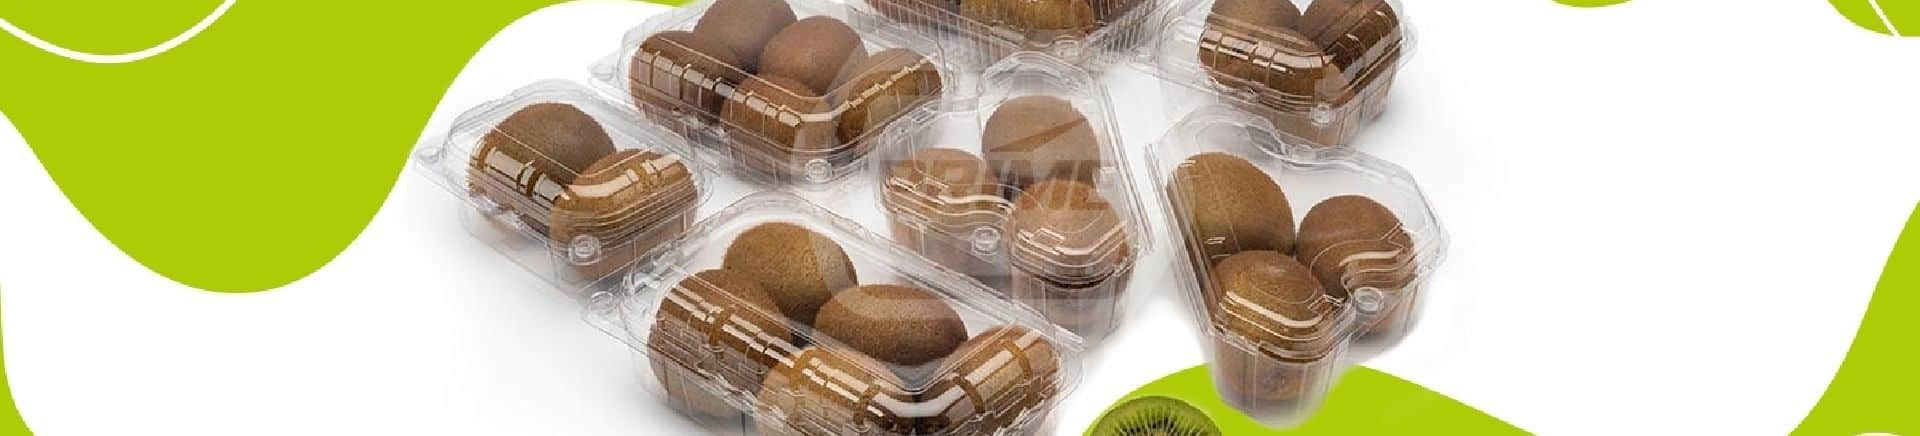 Kiwi Packaging